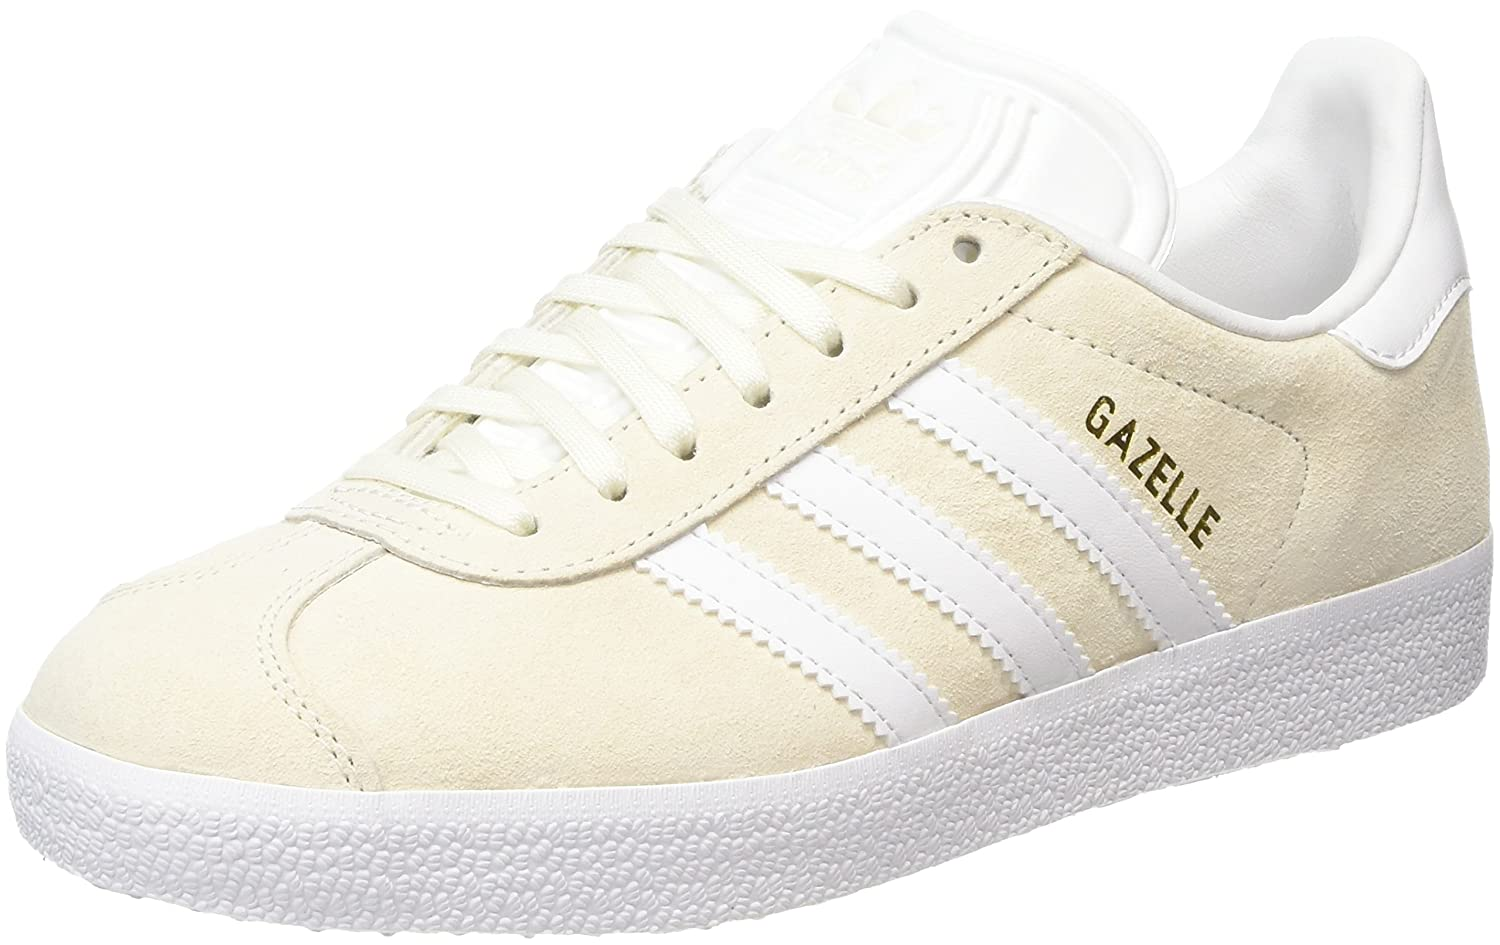 adidas Gazelle, Baskets Adulte Basses Mixte Adulte Blanc Baskets (Off 19911 White/White/Gold Met) a8bc457 - automaticcouplings.space